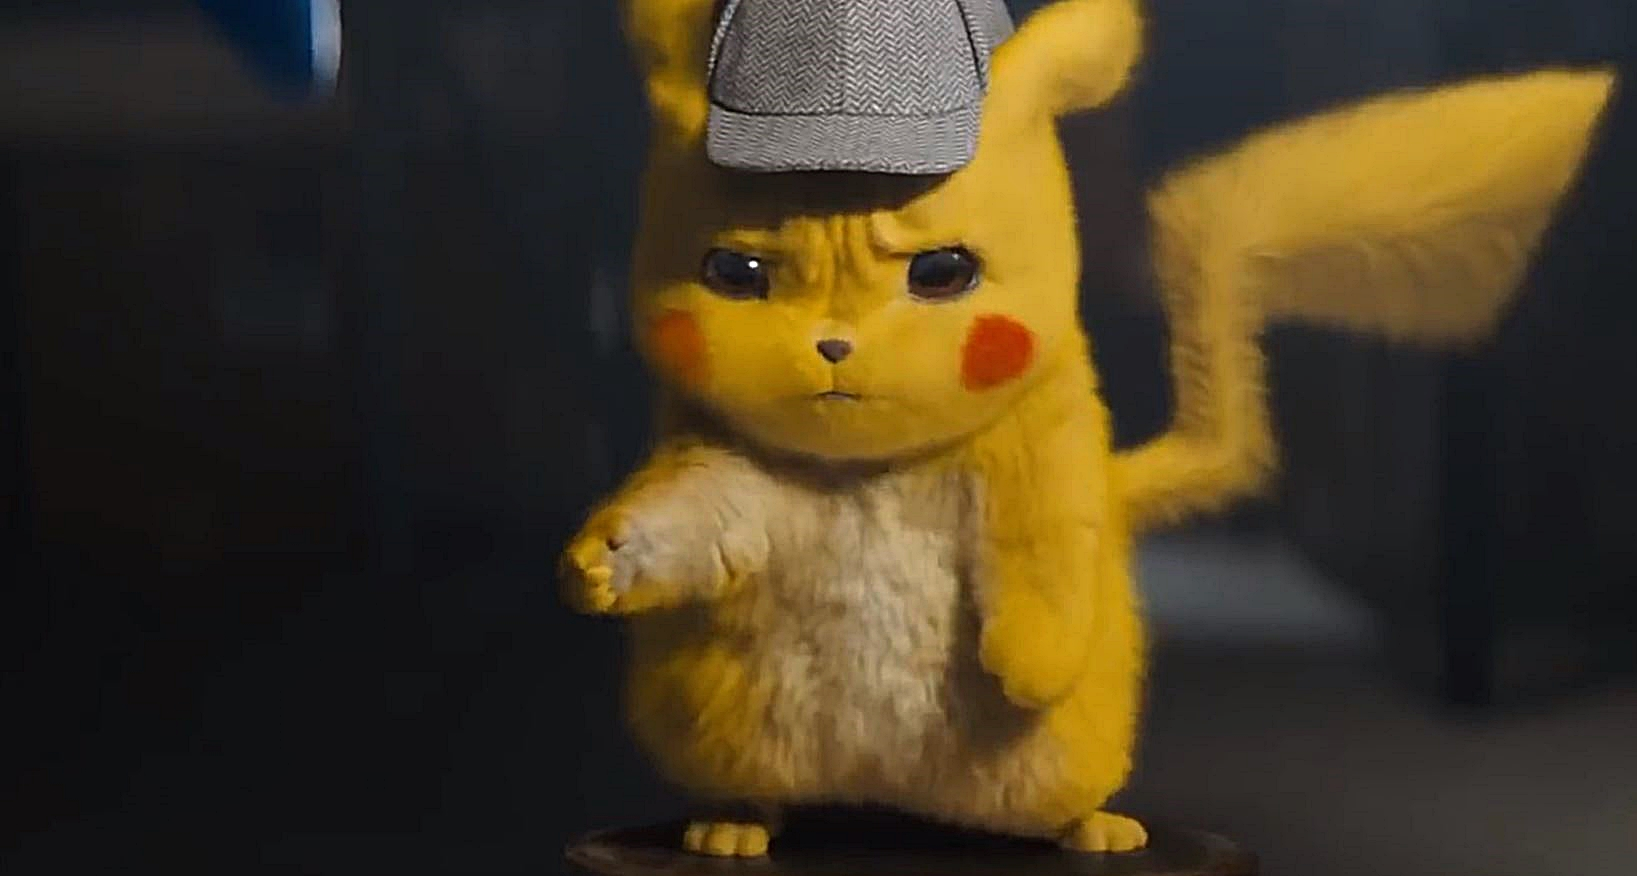 I Made This Pokémon GIF and I Hate It